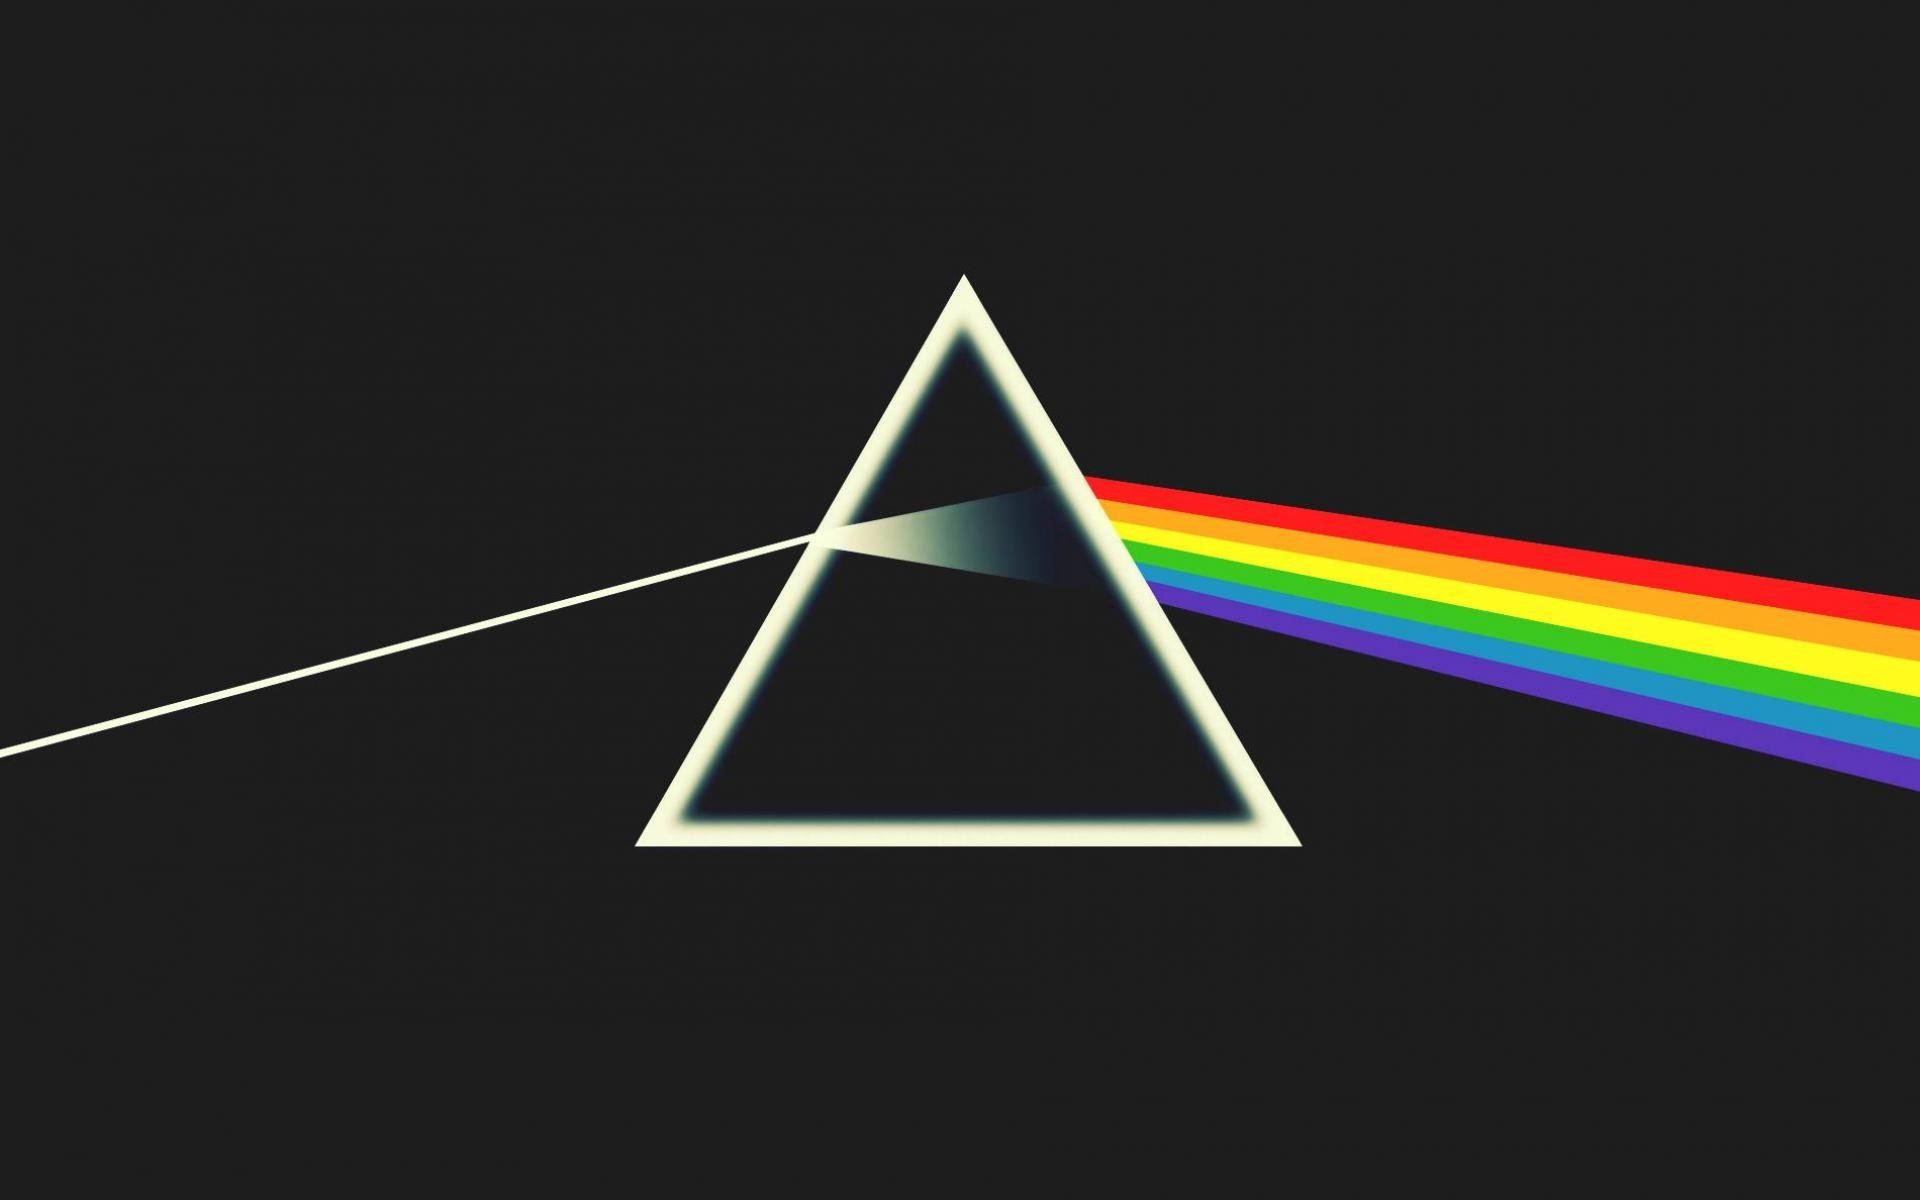 Pink Floyd Prism Wallpaper